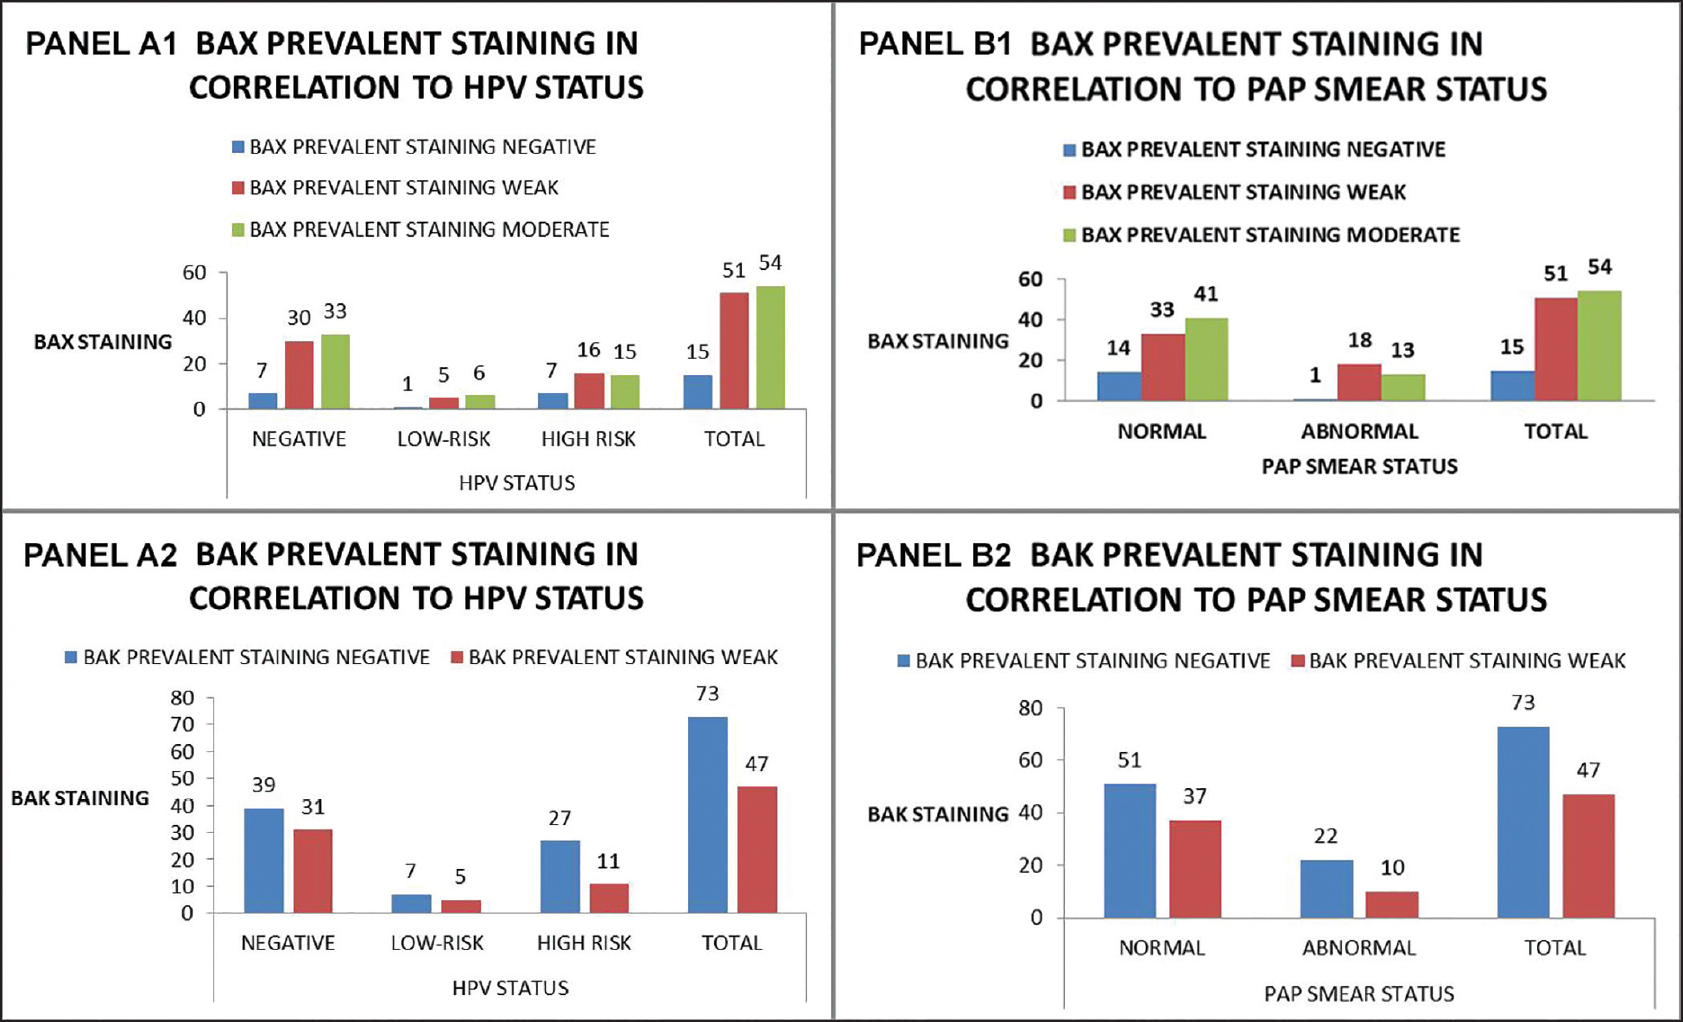 Figure 6: Bax and Bak prevalent staining groups in correlation with HPV status (negative/low-risk/high-risk) (Panel A1 and A2) and Pap smear status (normal/abnormal) (Panel B1 and B2)